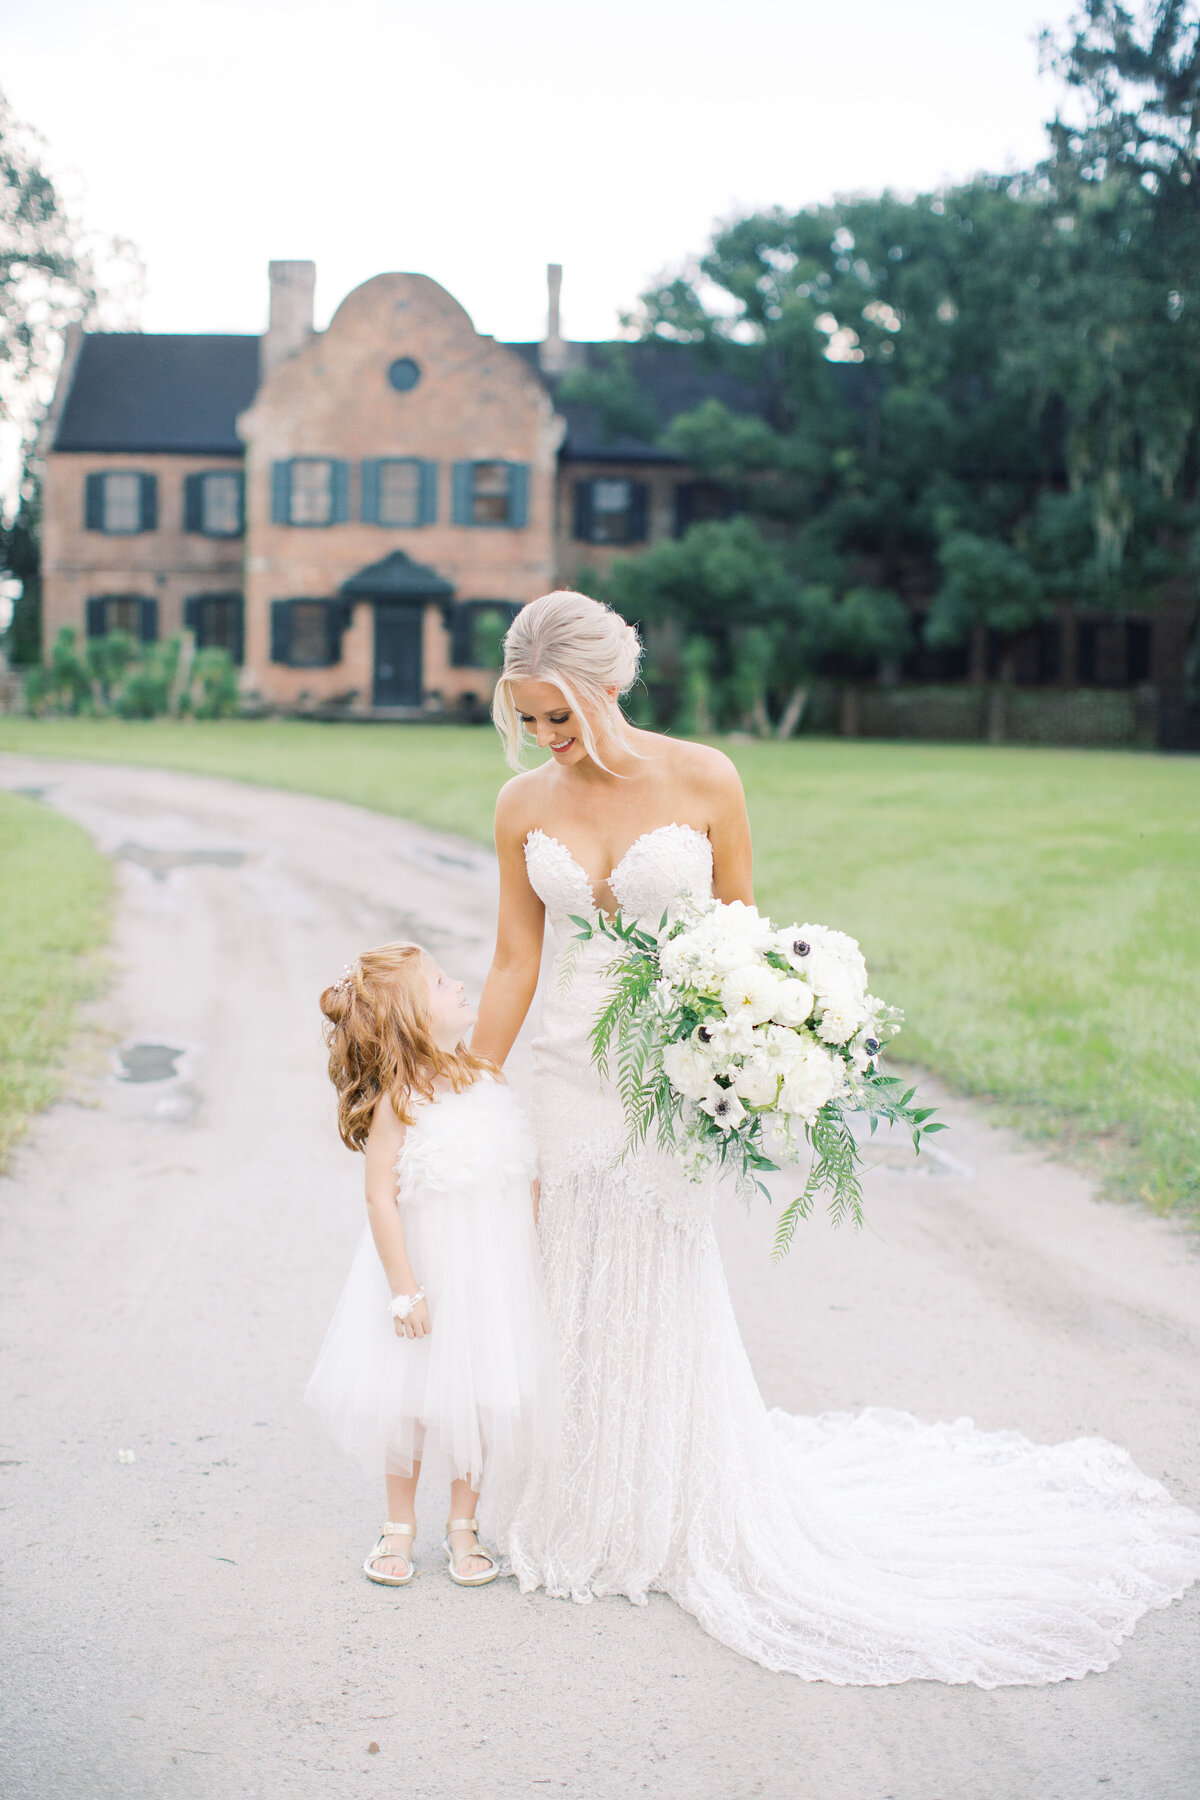 Melton_Wedding__Middleton_Place_Plantation_Charleston_South_Carolina_Jacksonville_Florida_Devon_Donnahoo_Photography__0245